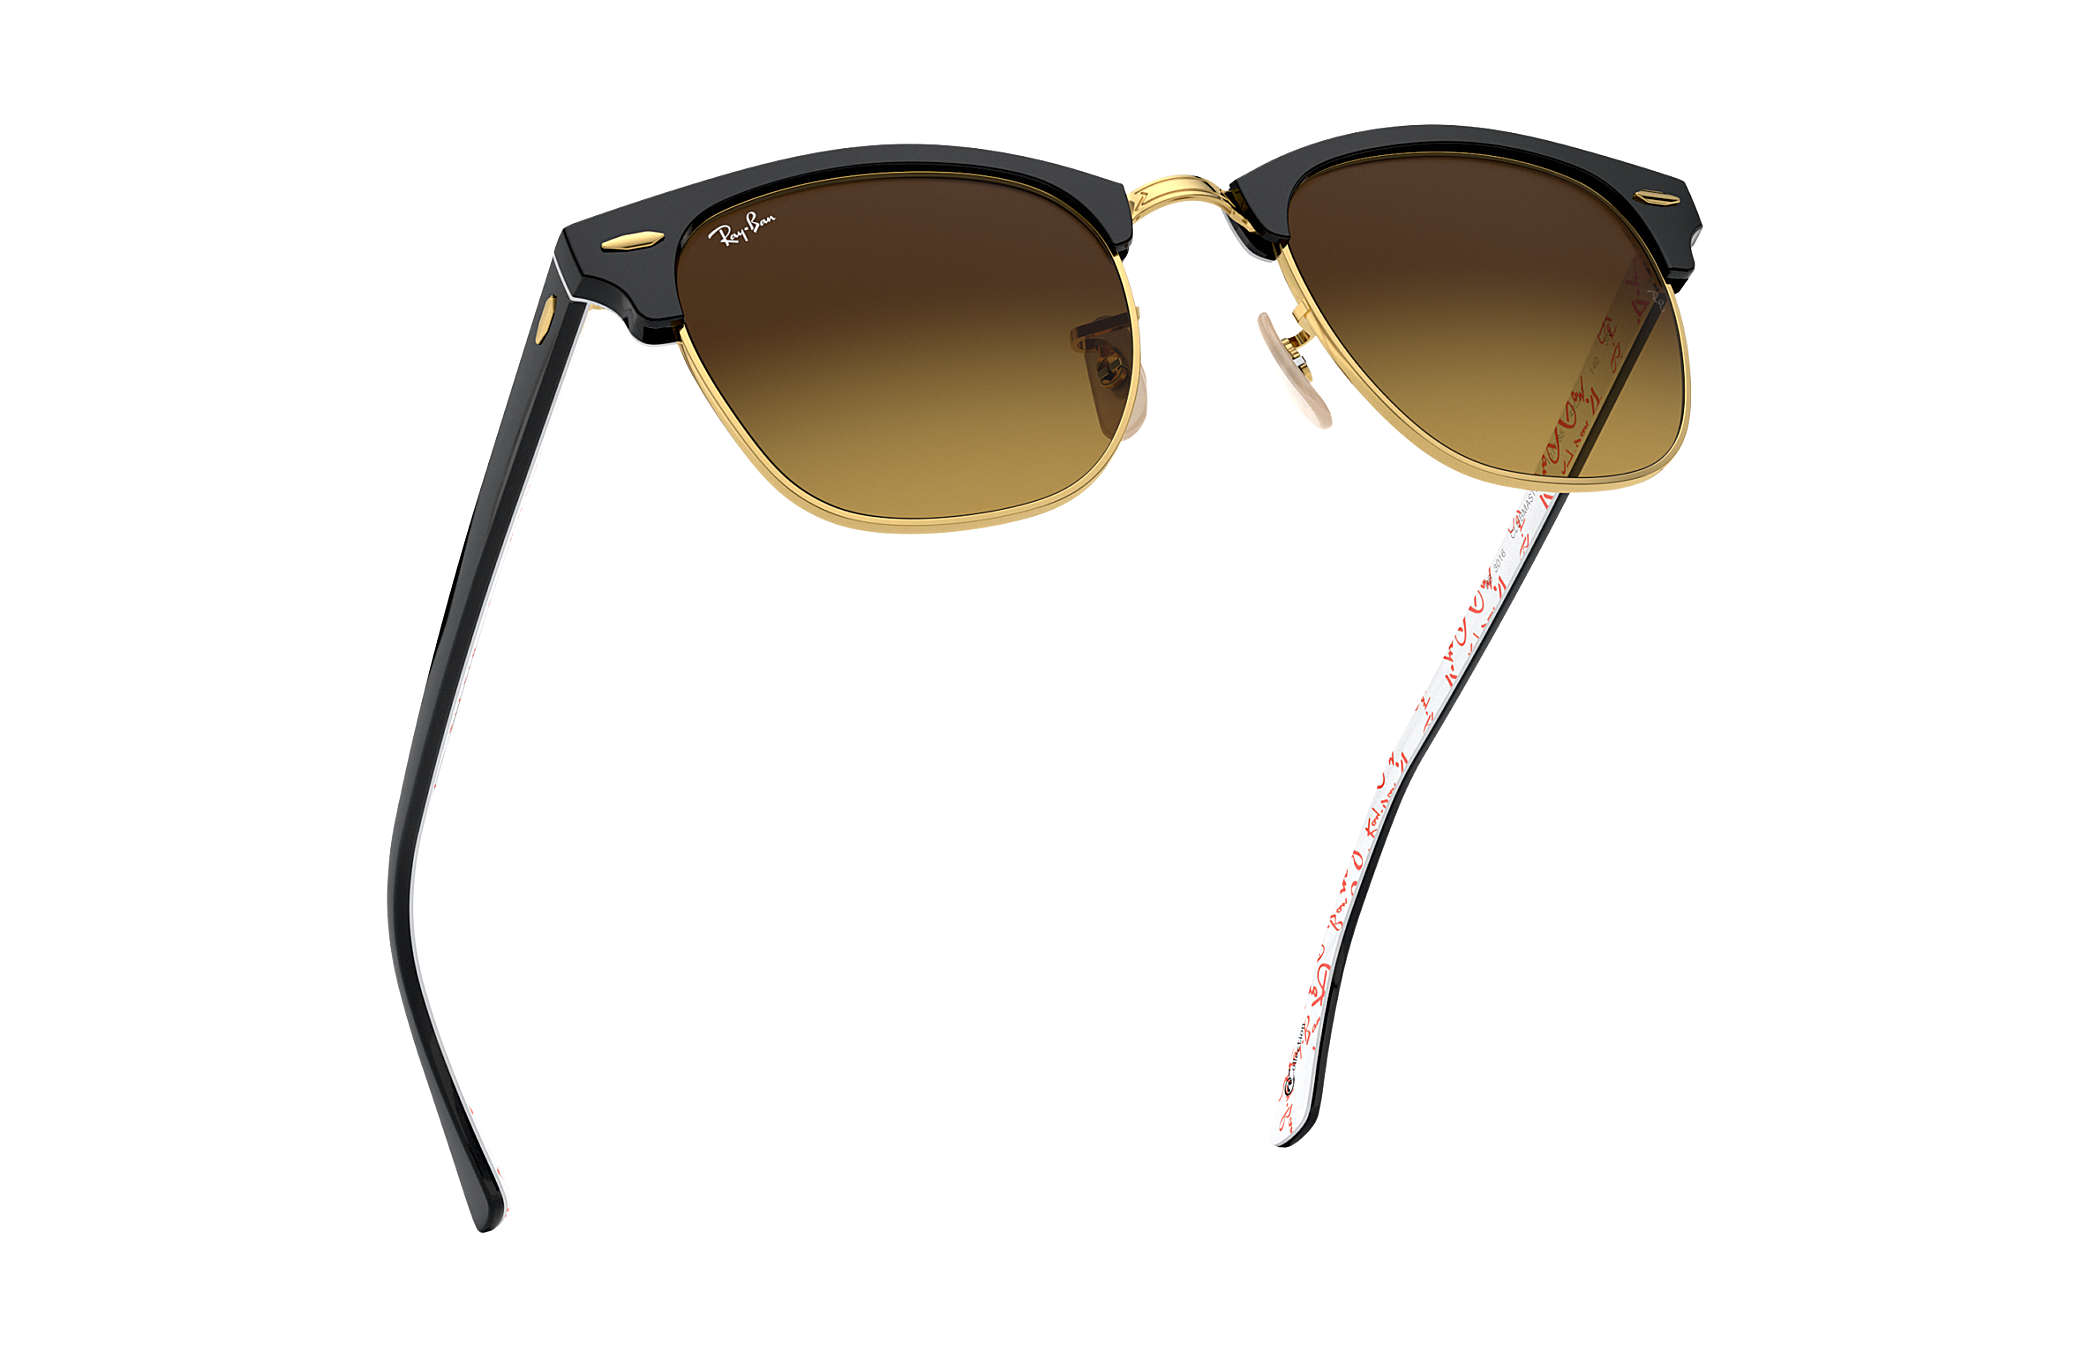 da74b51548 Ray-Ban Clubmaster  collection RB3016 Black - Acetate - Brown Lenses ...